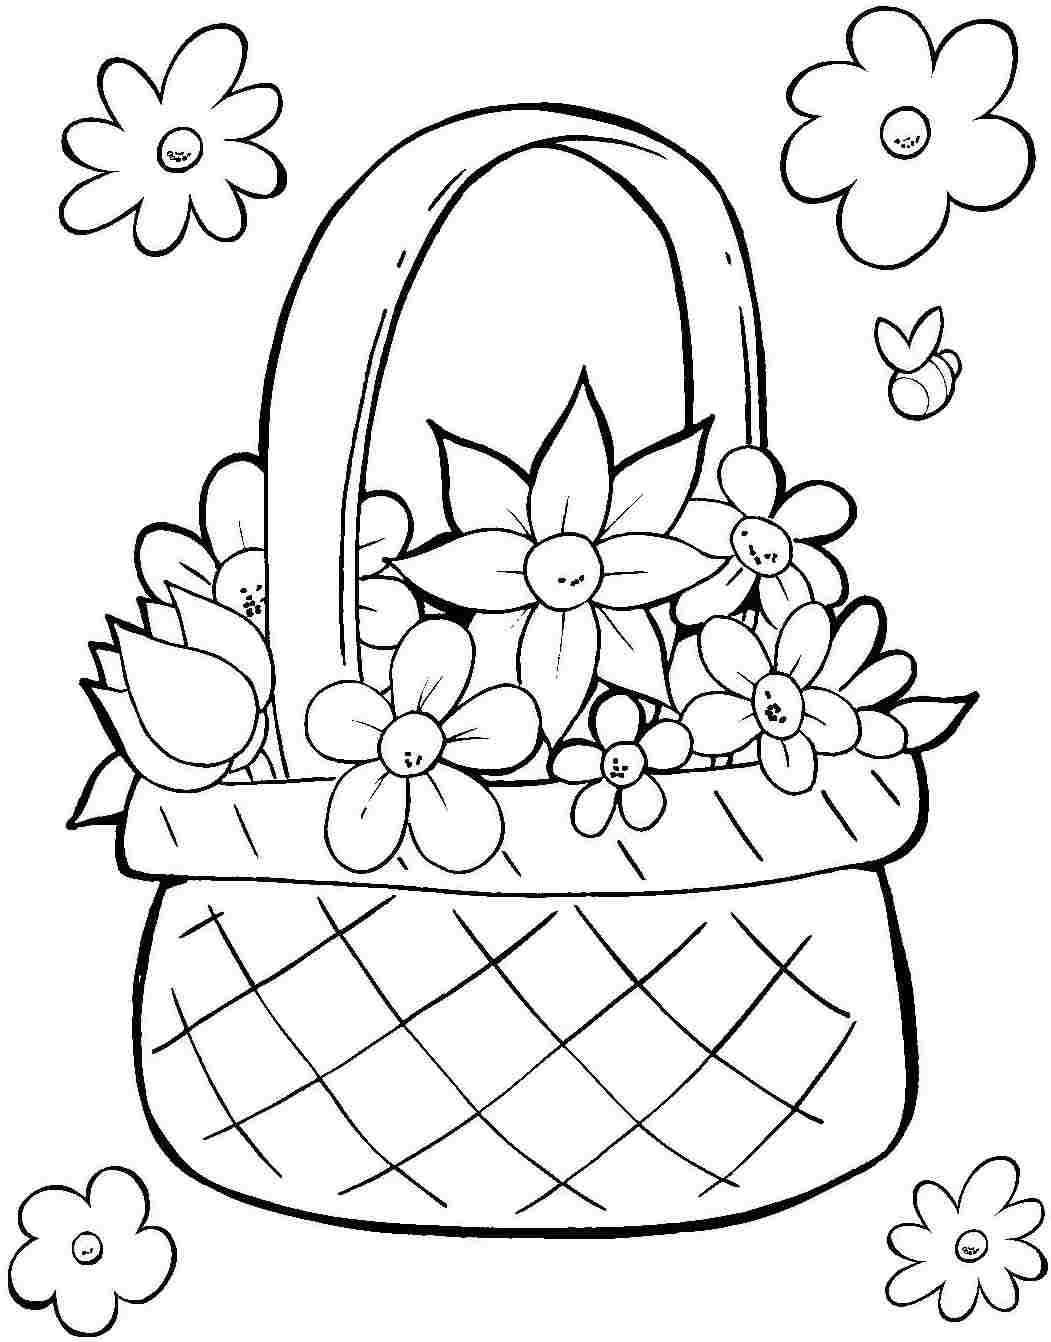 printable easter coloring pages easter basket printable coloring pages at getcoloringscom easter pages coloring printable